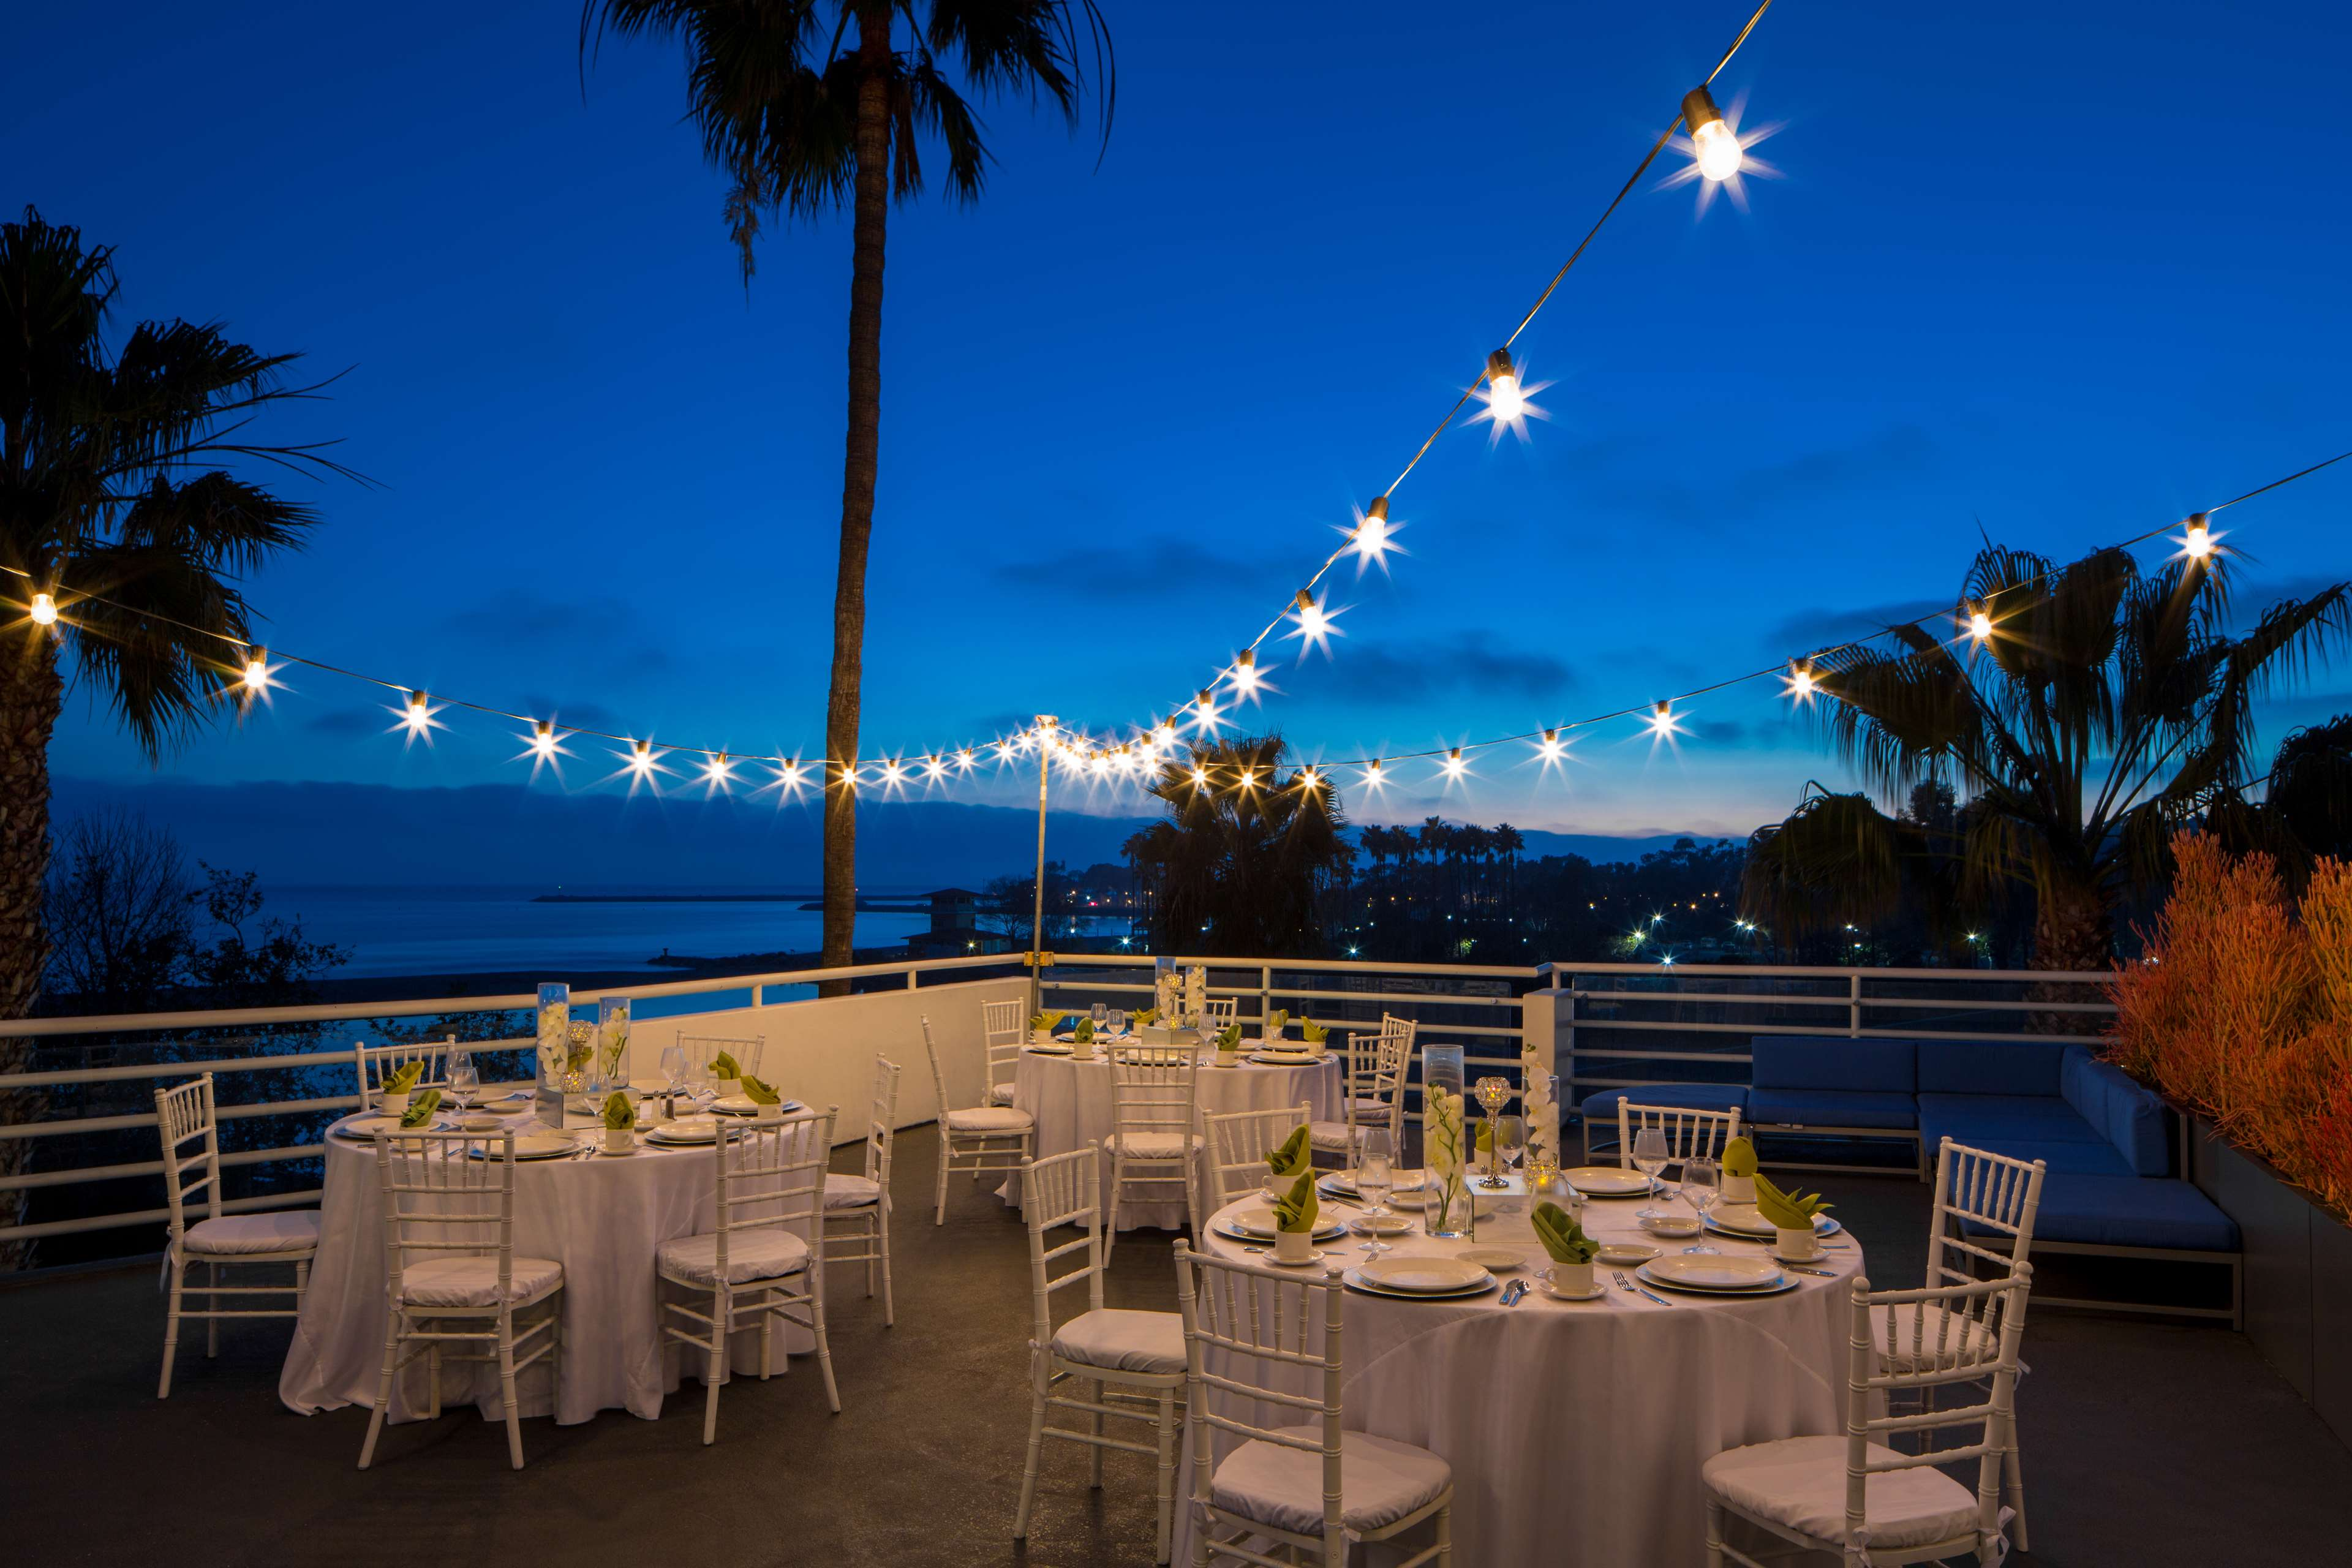 DoubleTree Suites by Hilton Hotel Doheny Beach - Dana Point image 23